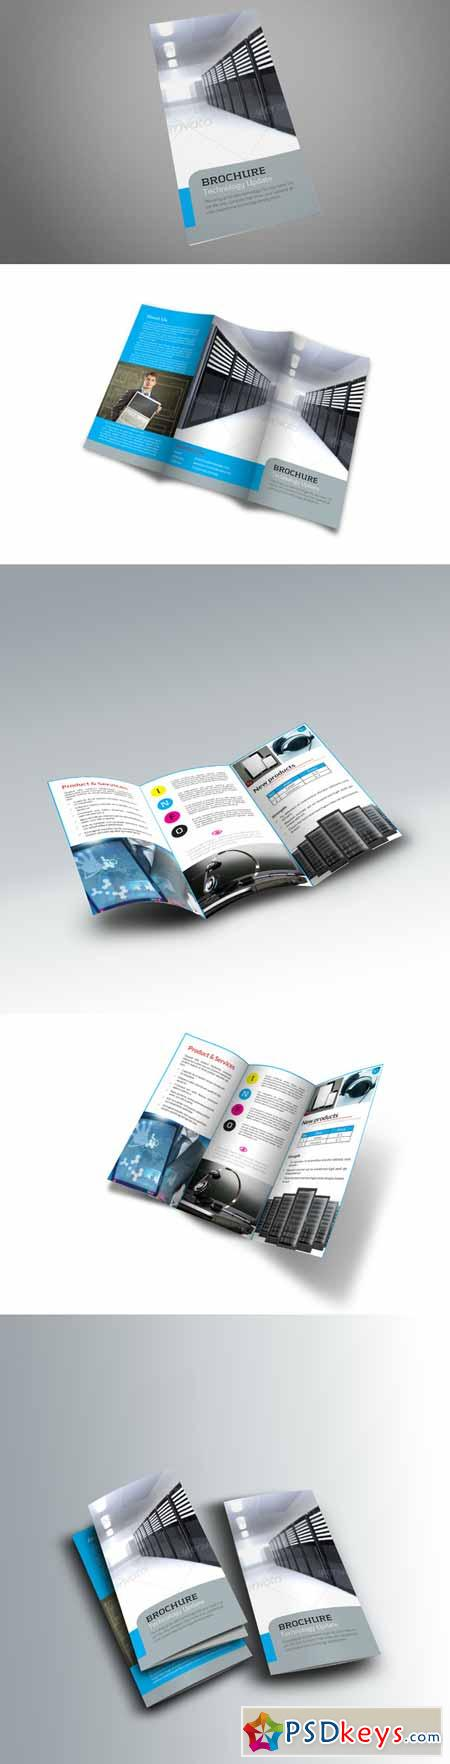 Trifold Brochure Template 166252